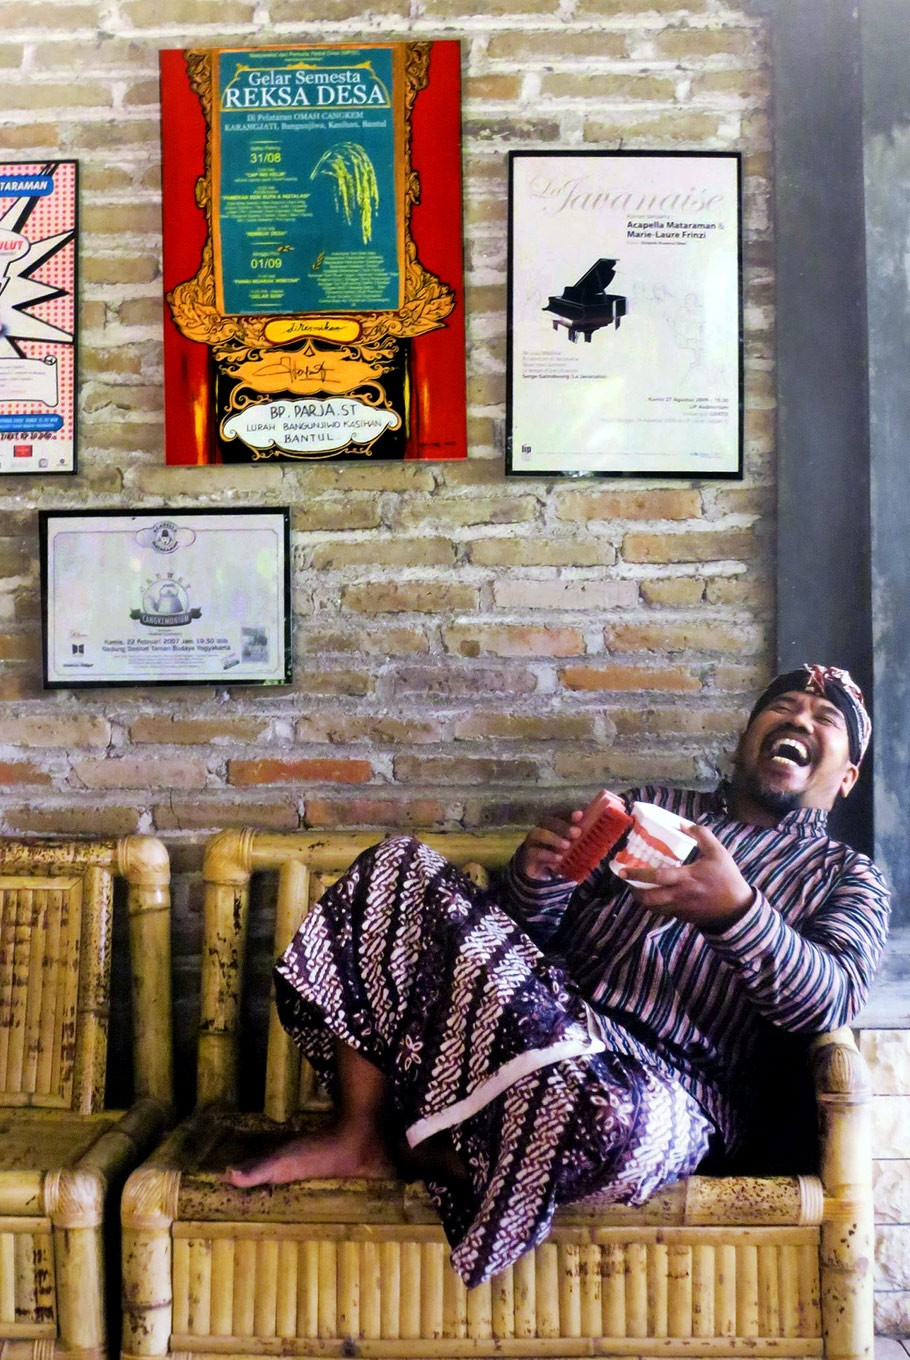 Out loud: Pardiman Djoyonegoro, an artist developing gamelan into a vocal performance, shows his humorous side in Adhi's portrait photograph.